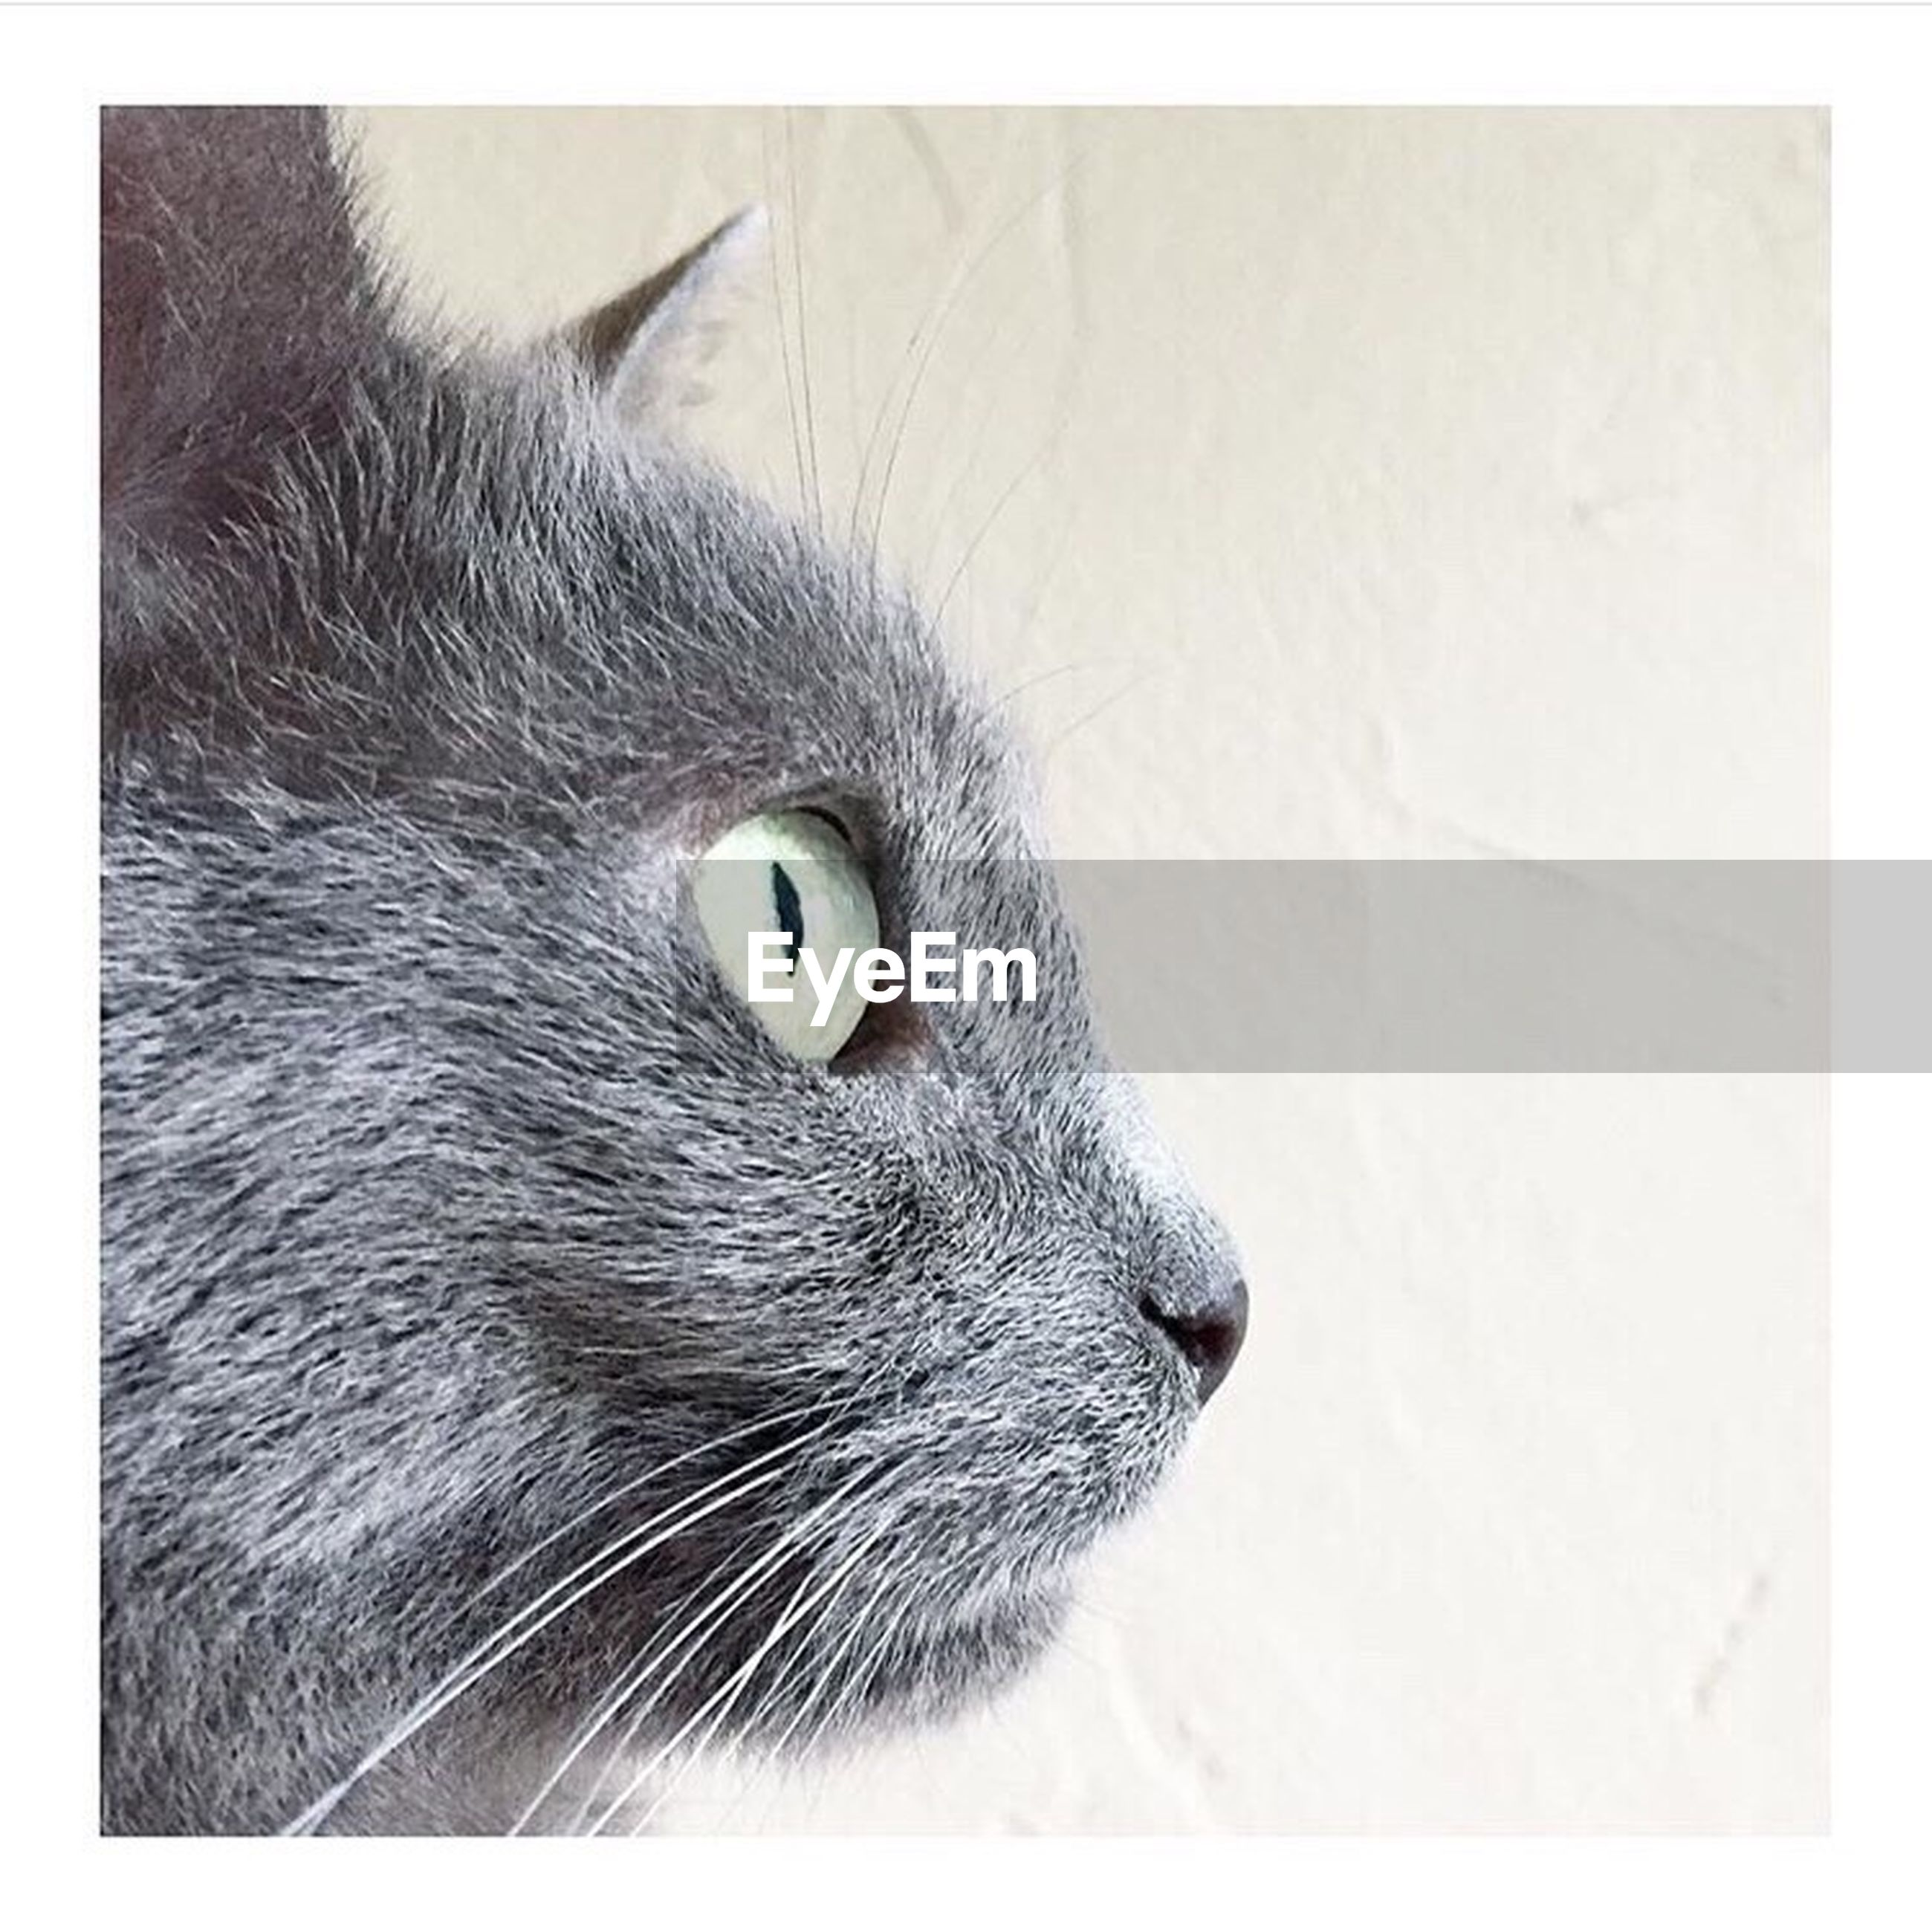 animal themes, domestic cat, cat, pets, feline, whisker, animal head, close-up, mammal, looking away, animal eye, animal body part, portrait, alertness, staring, no people, animal, focus on foreground, nature, selective focus